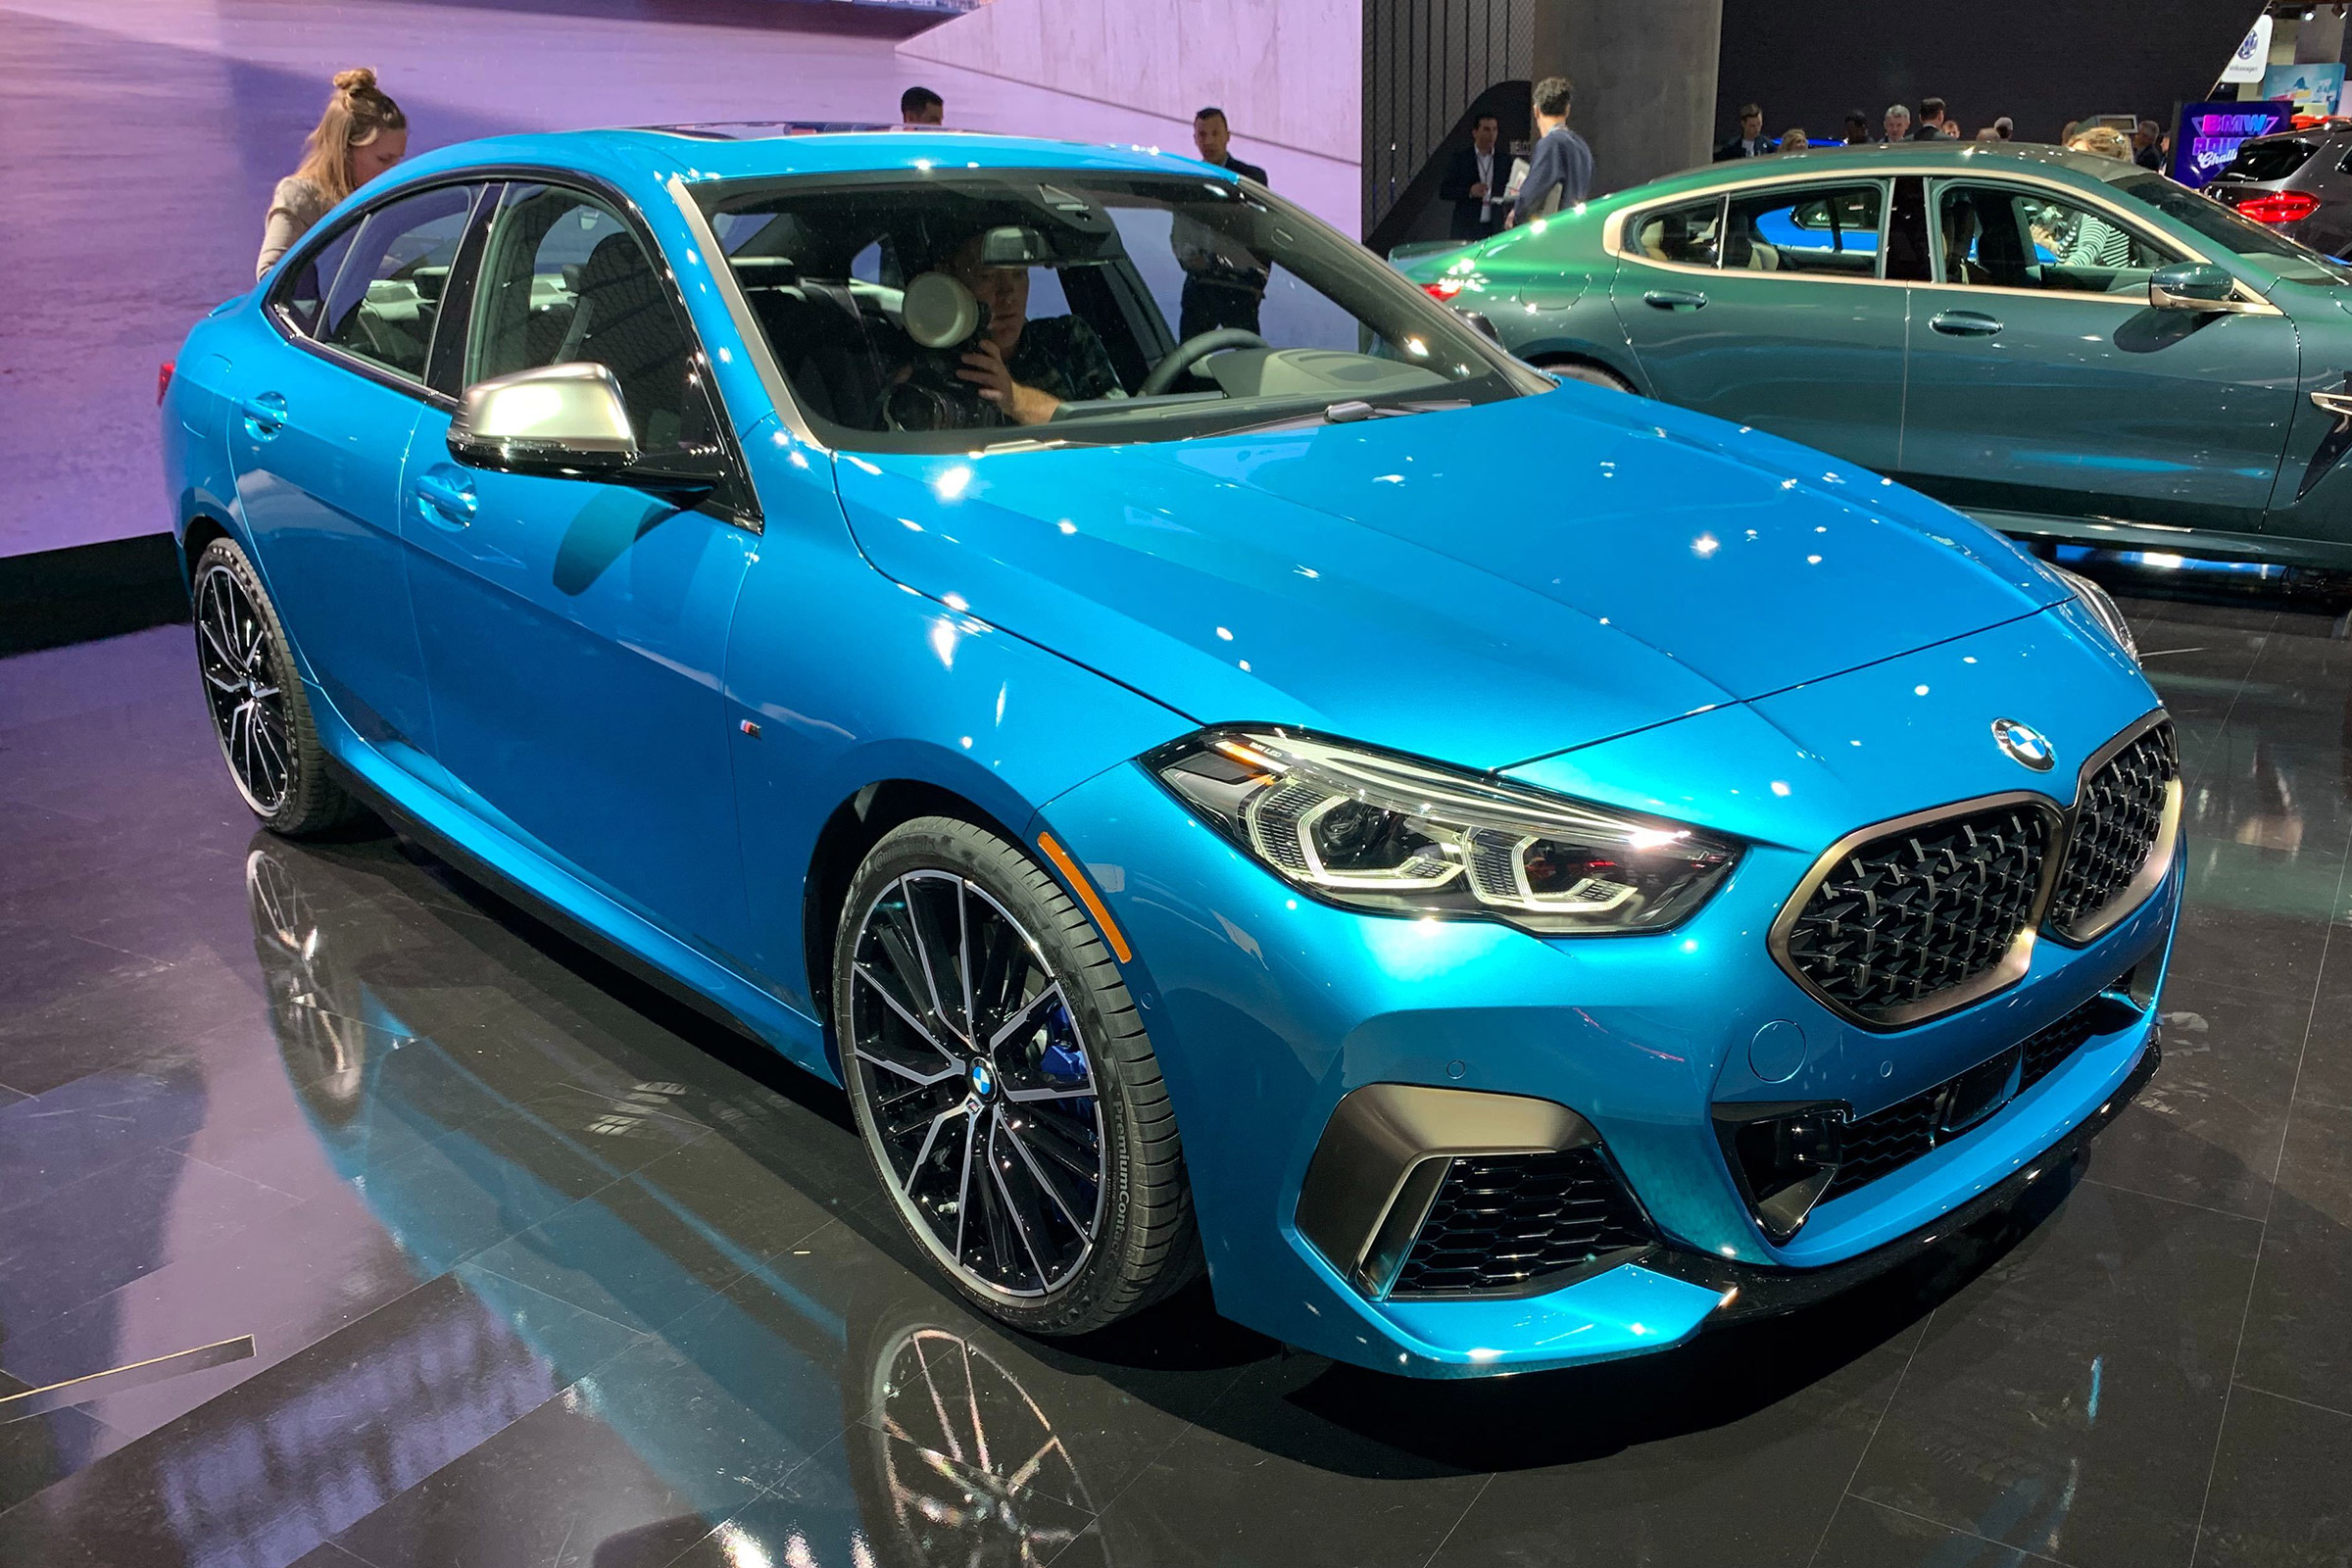 New 2020 Bmw 2 Series Gran Coupe Aims To Topple Mercedes Cla Auto Express